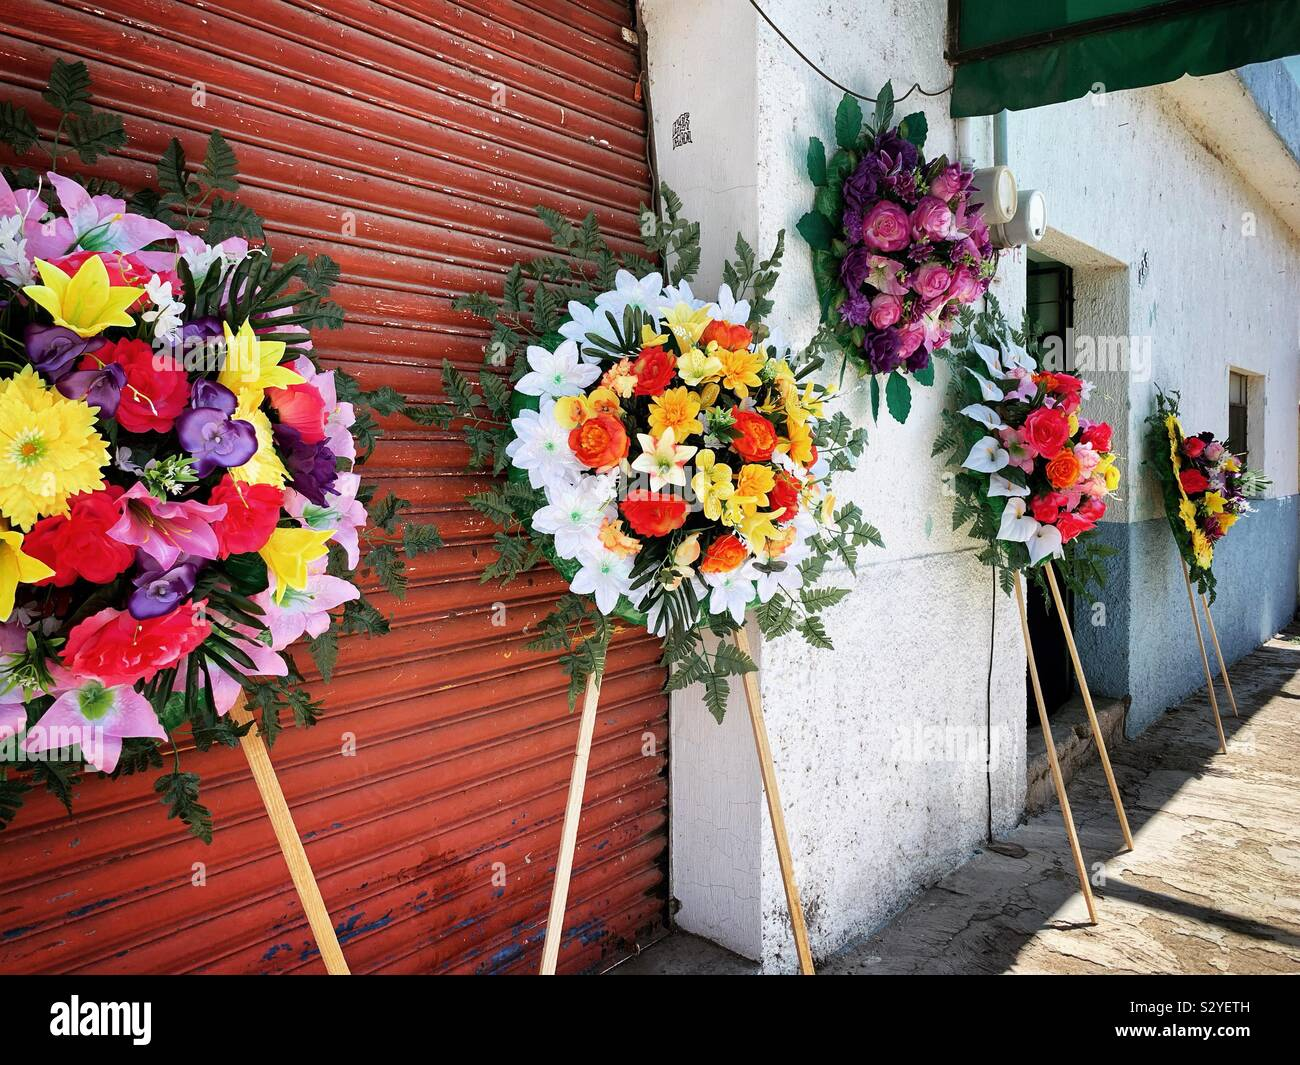 Floral Wreaths And Arrangements Are On Display For Purchase In Preparation For Dia De Los Muertos Stock Photo Alamy